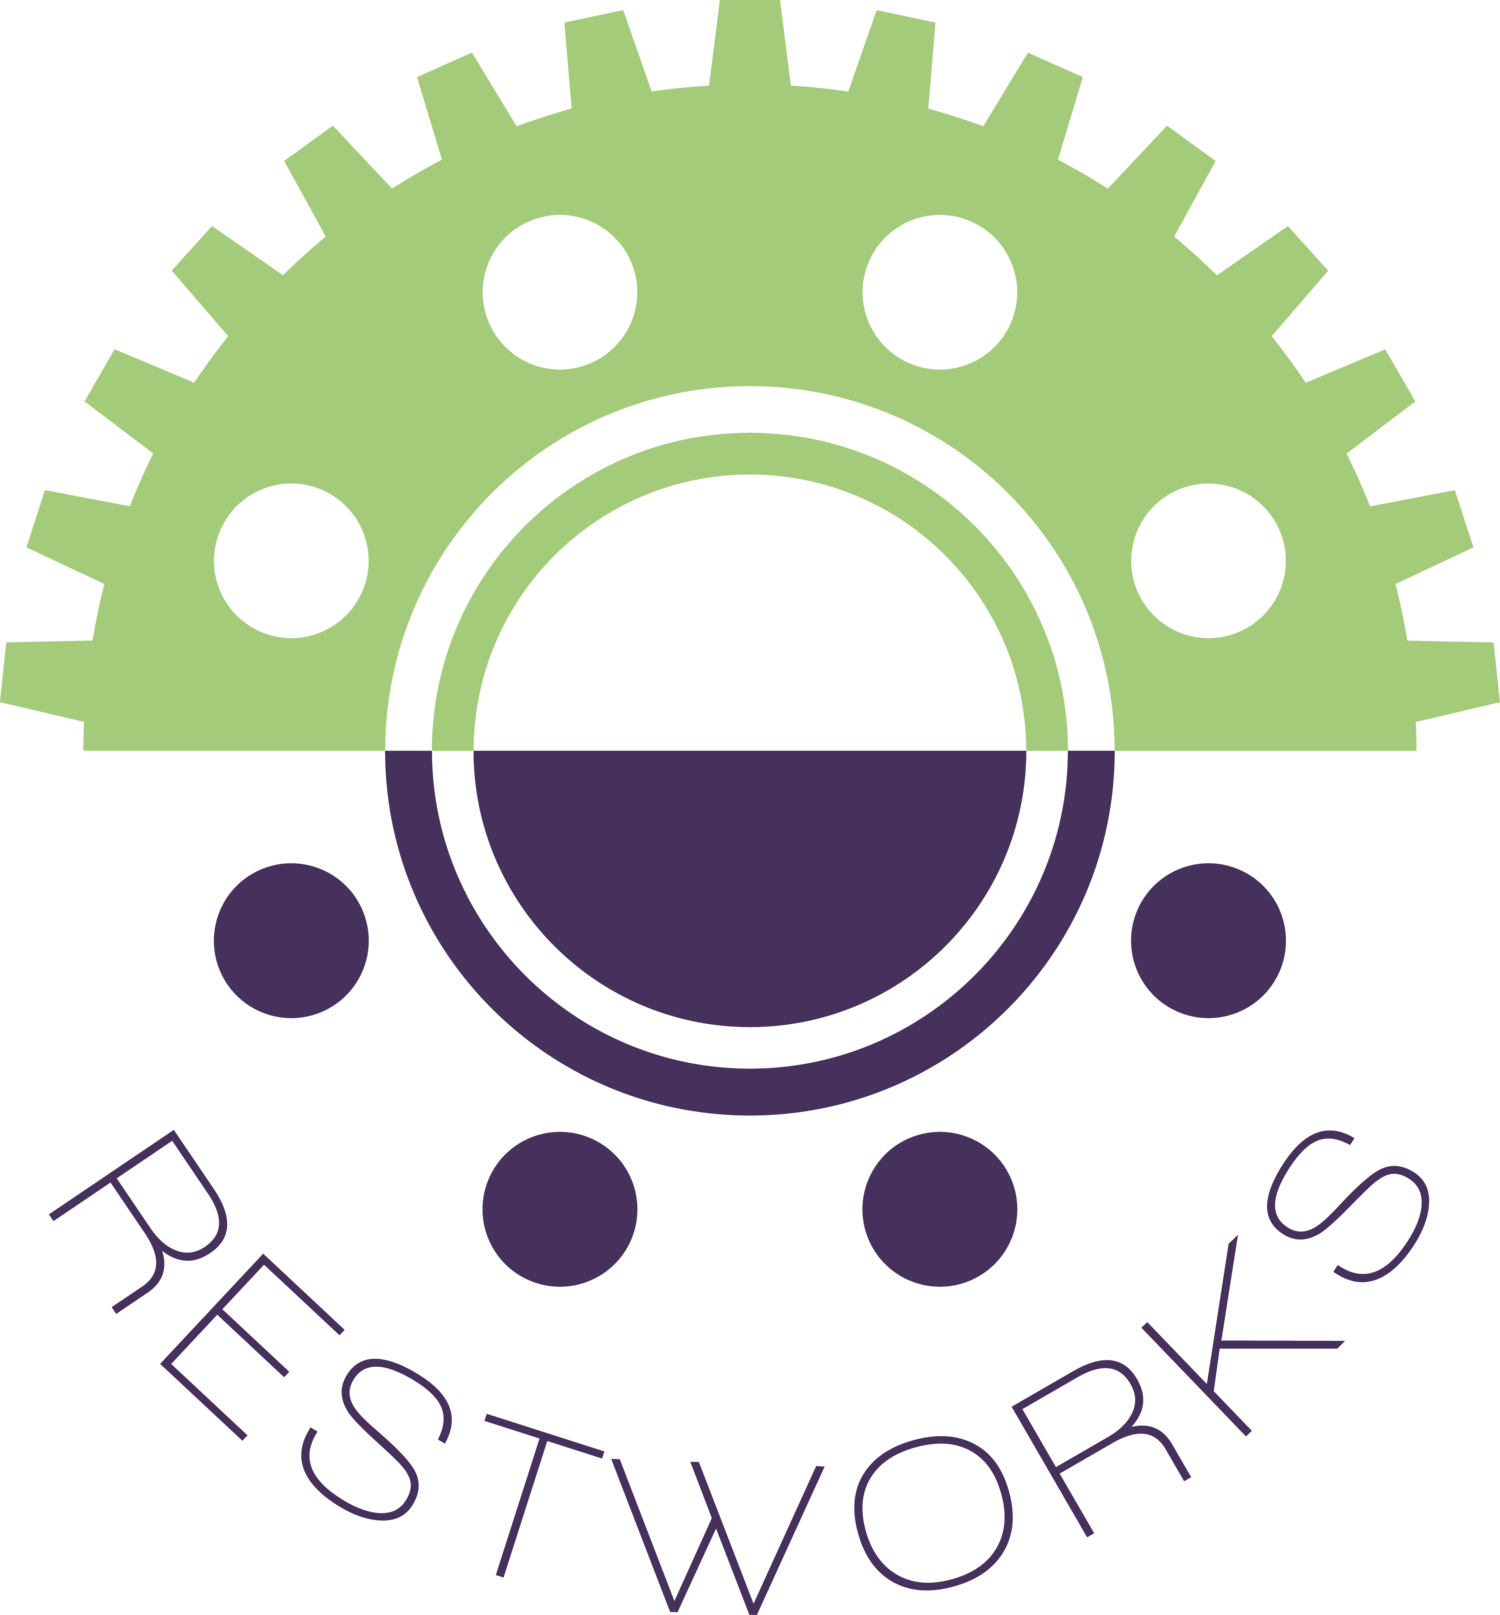 Restworks - United Kingdom